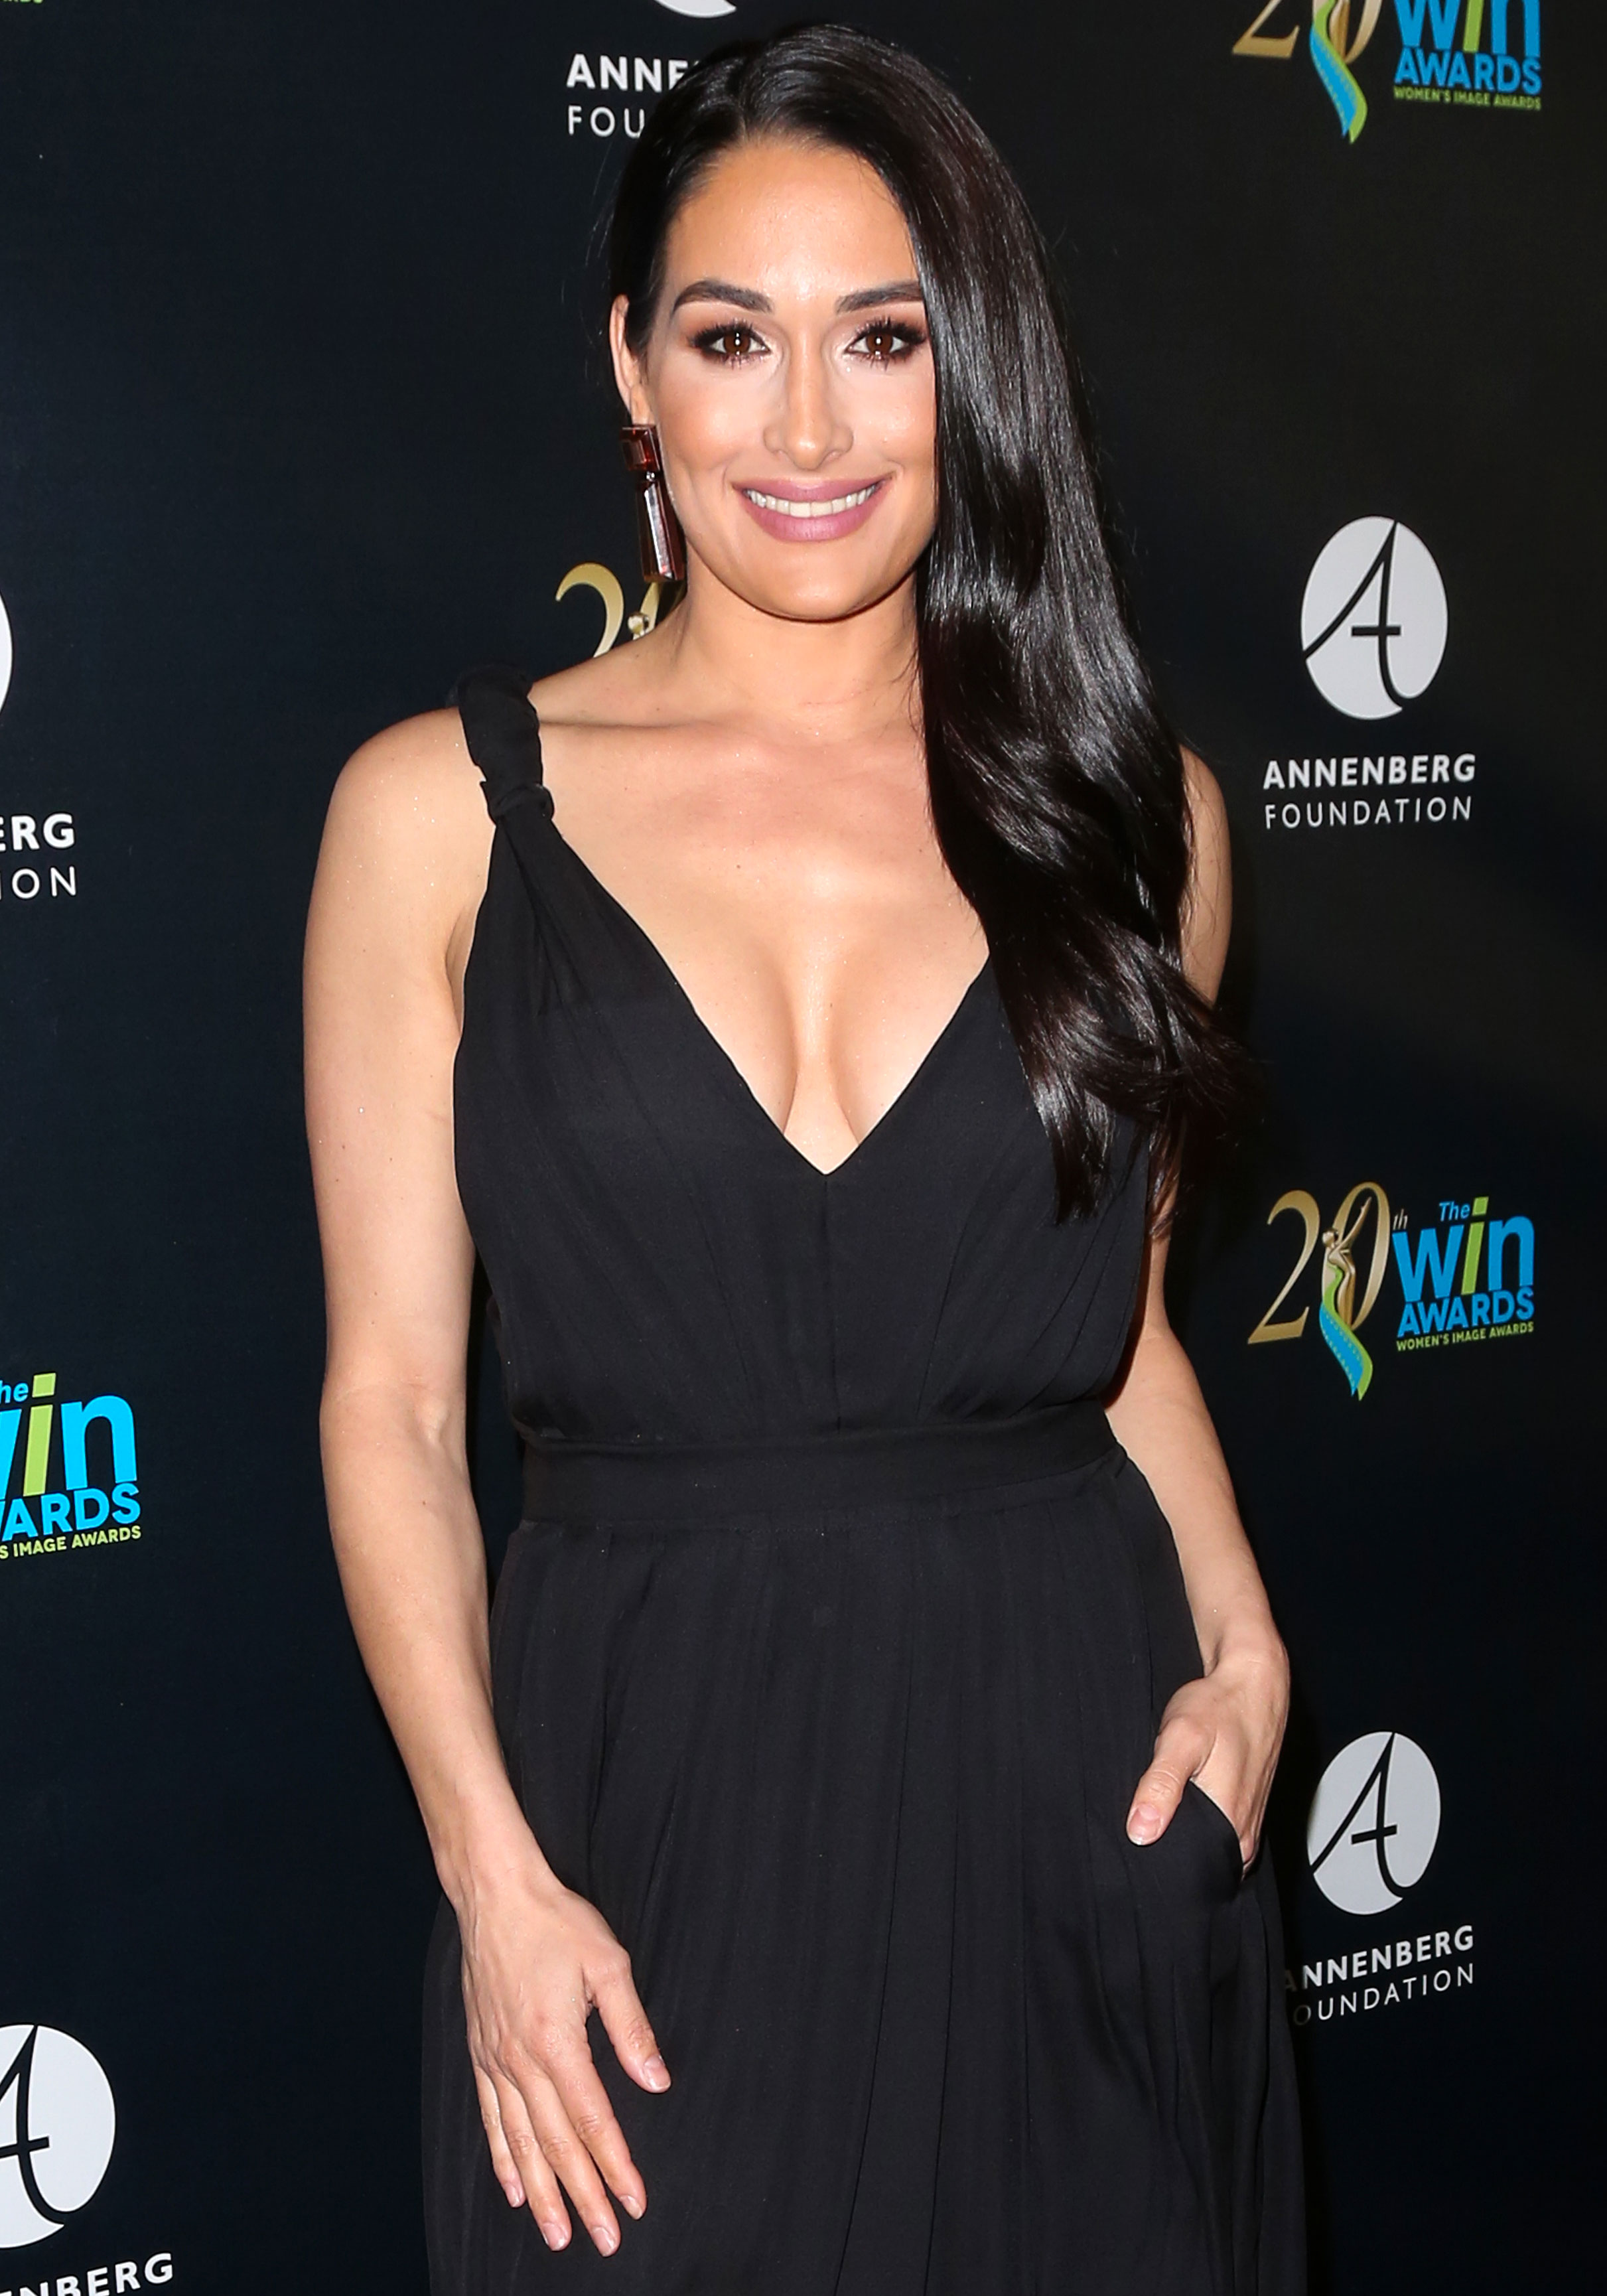 Nikki Bella Loved Seeing Ex John Cena Move On Shay Shariatzadeh - Nikki Bella attends the 20th Annual Women's Image Awards on February 22, 2019 in Beverly Hills, California.